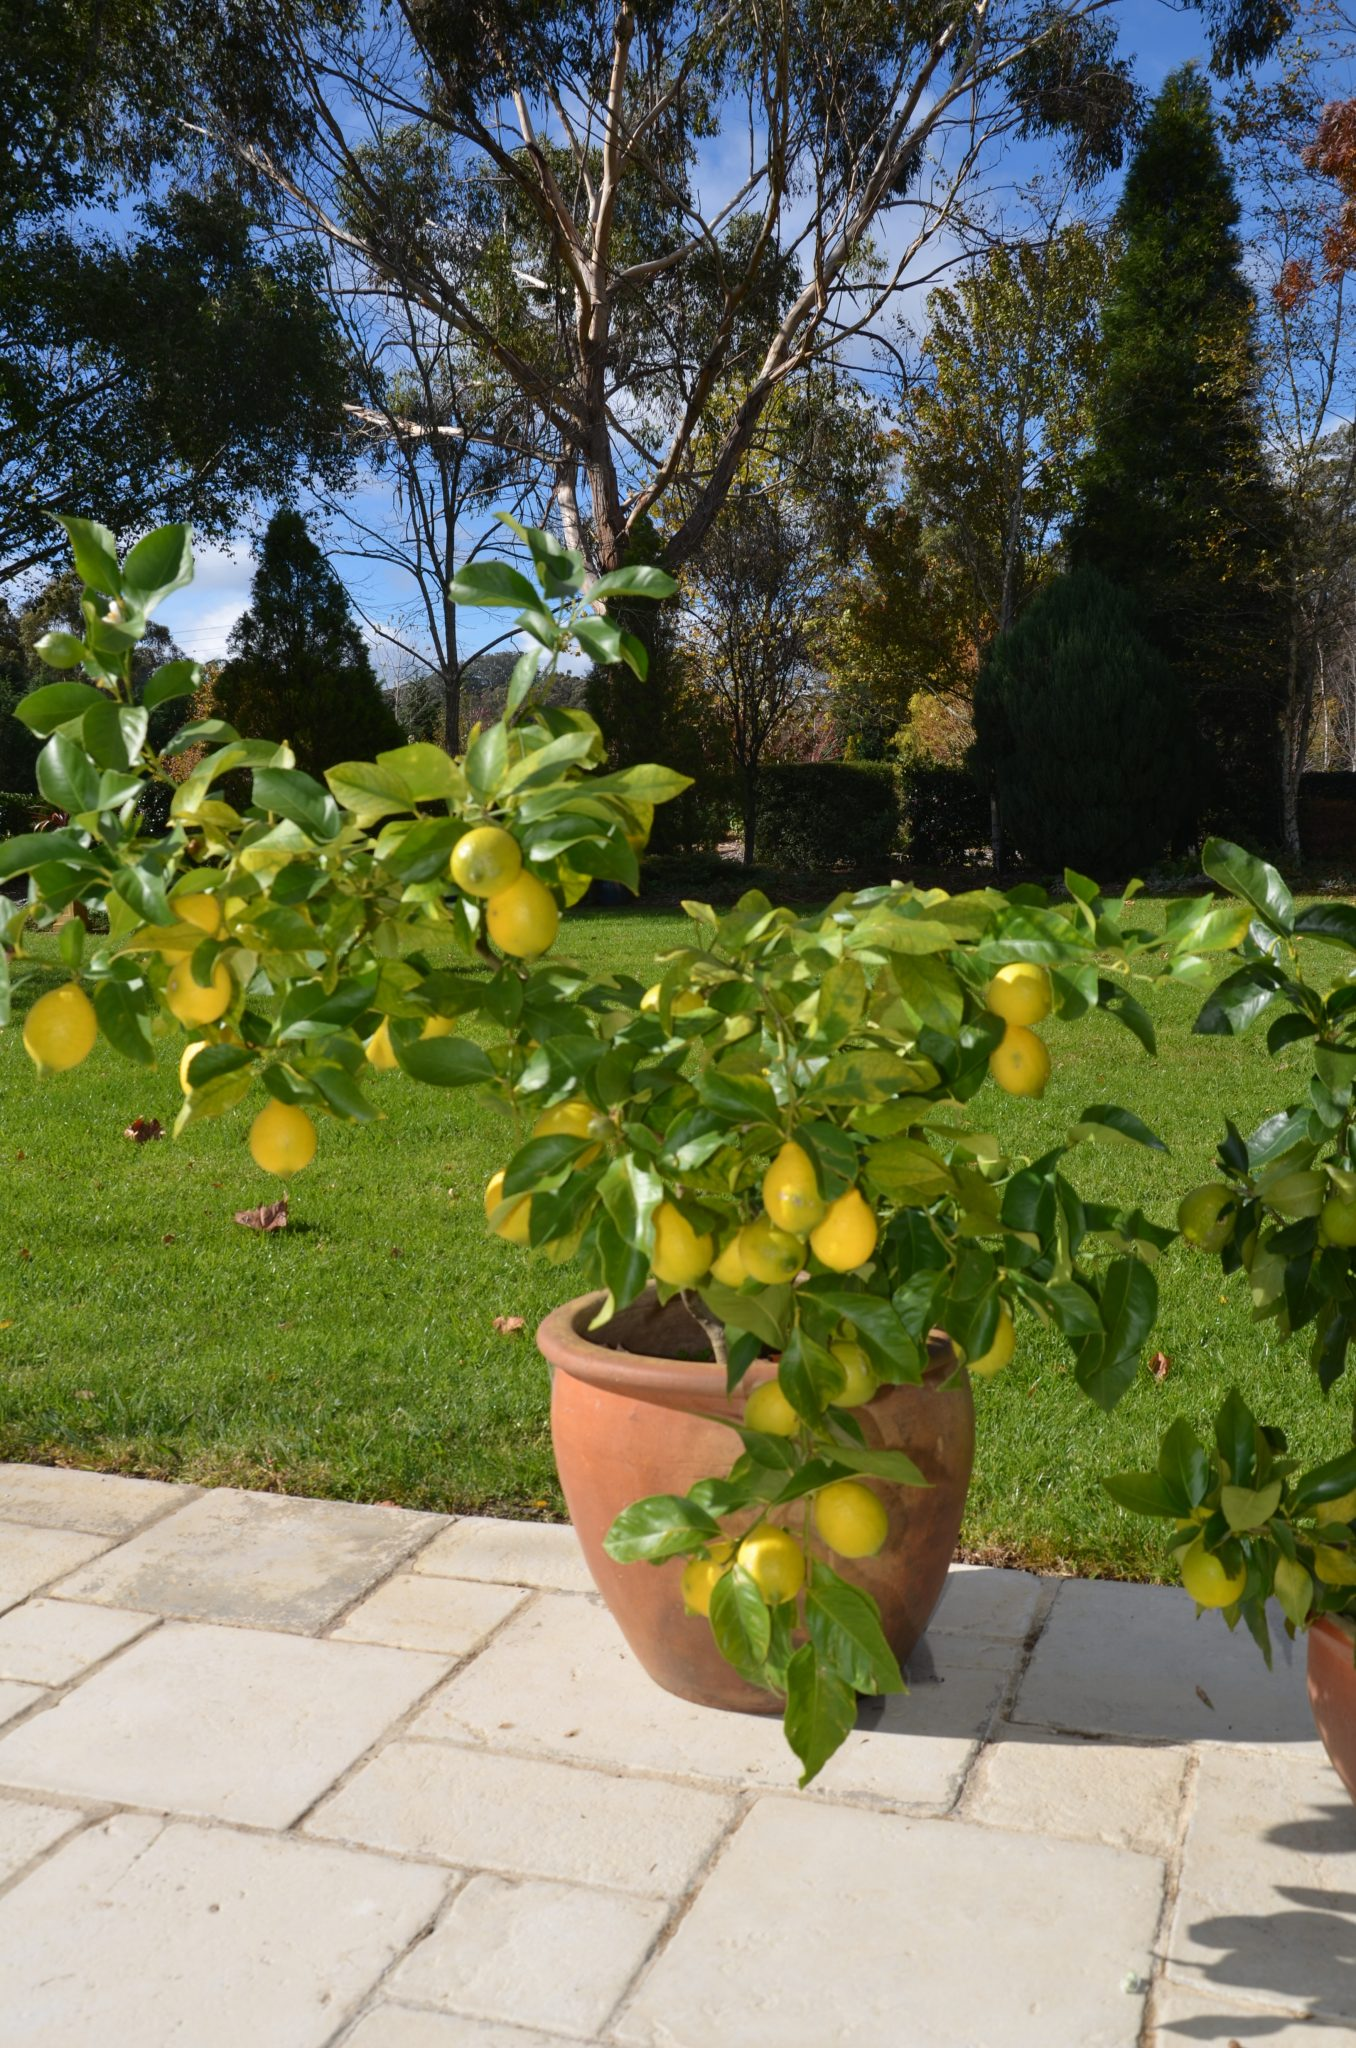 how to grow citrus in pots  u00bb my productive backyard  u00bb learn to grow your own food at home